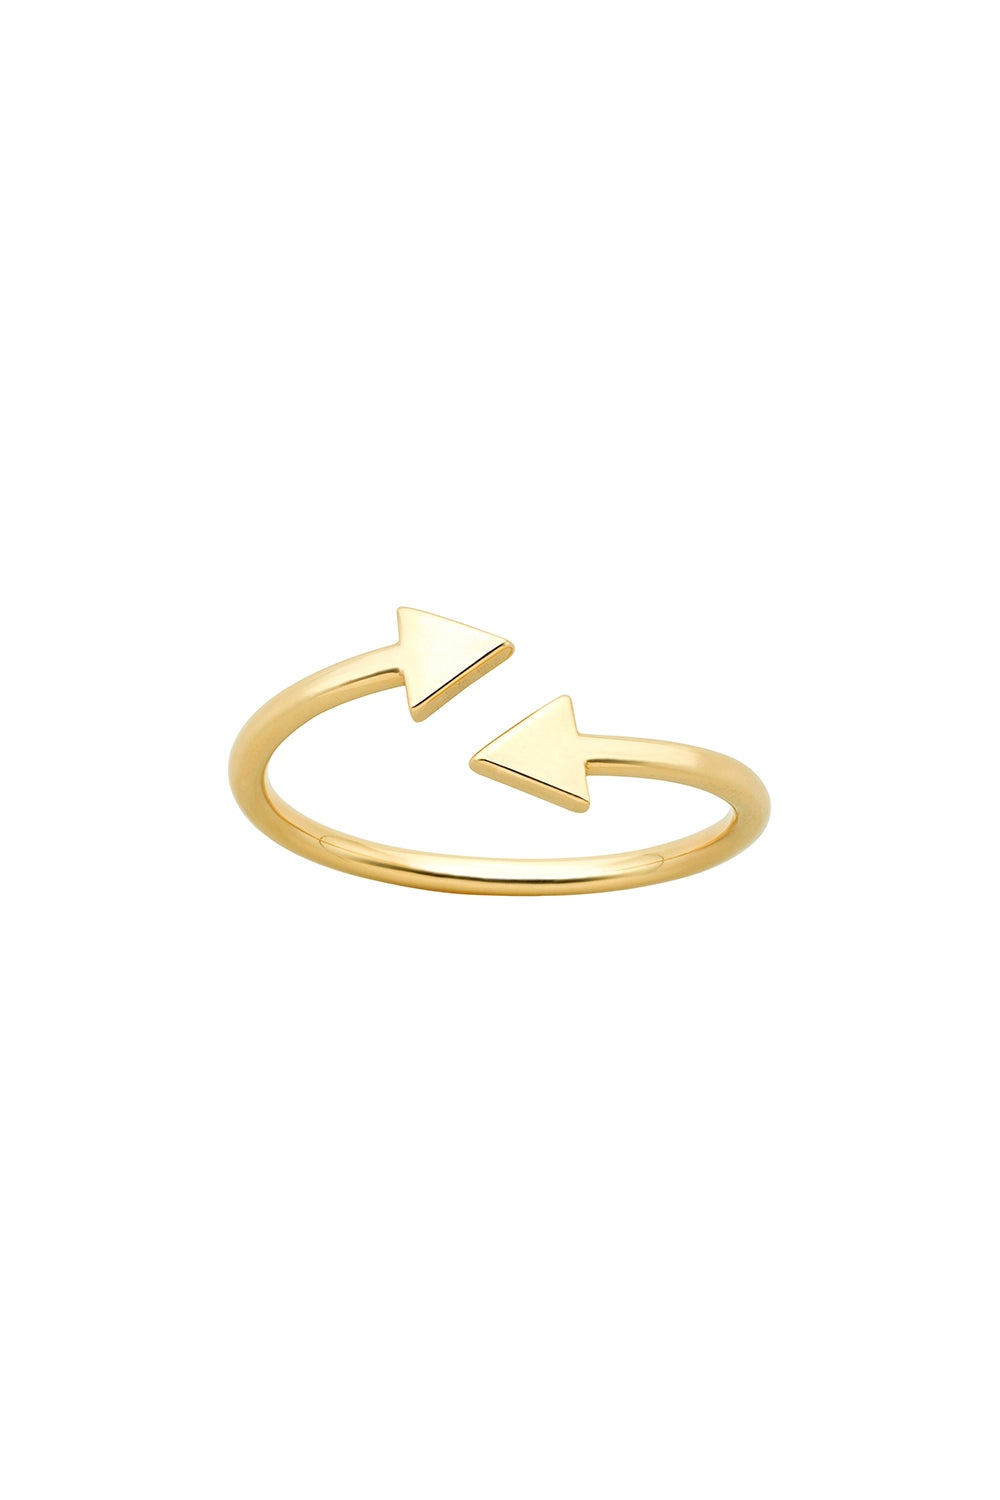 Celestial Arrows Ring Gold